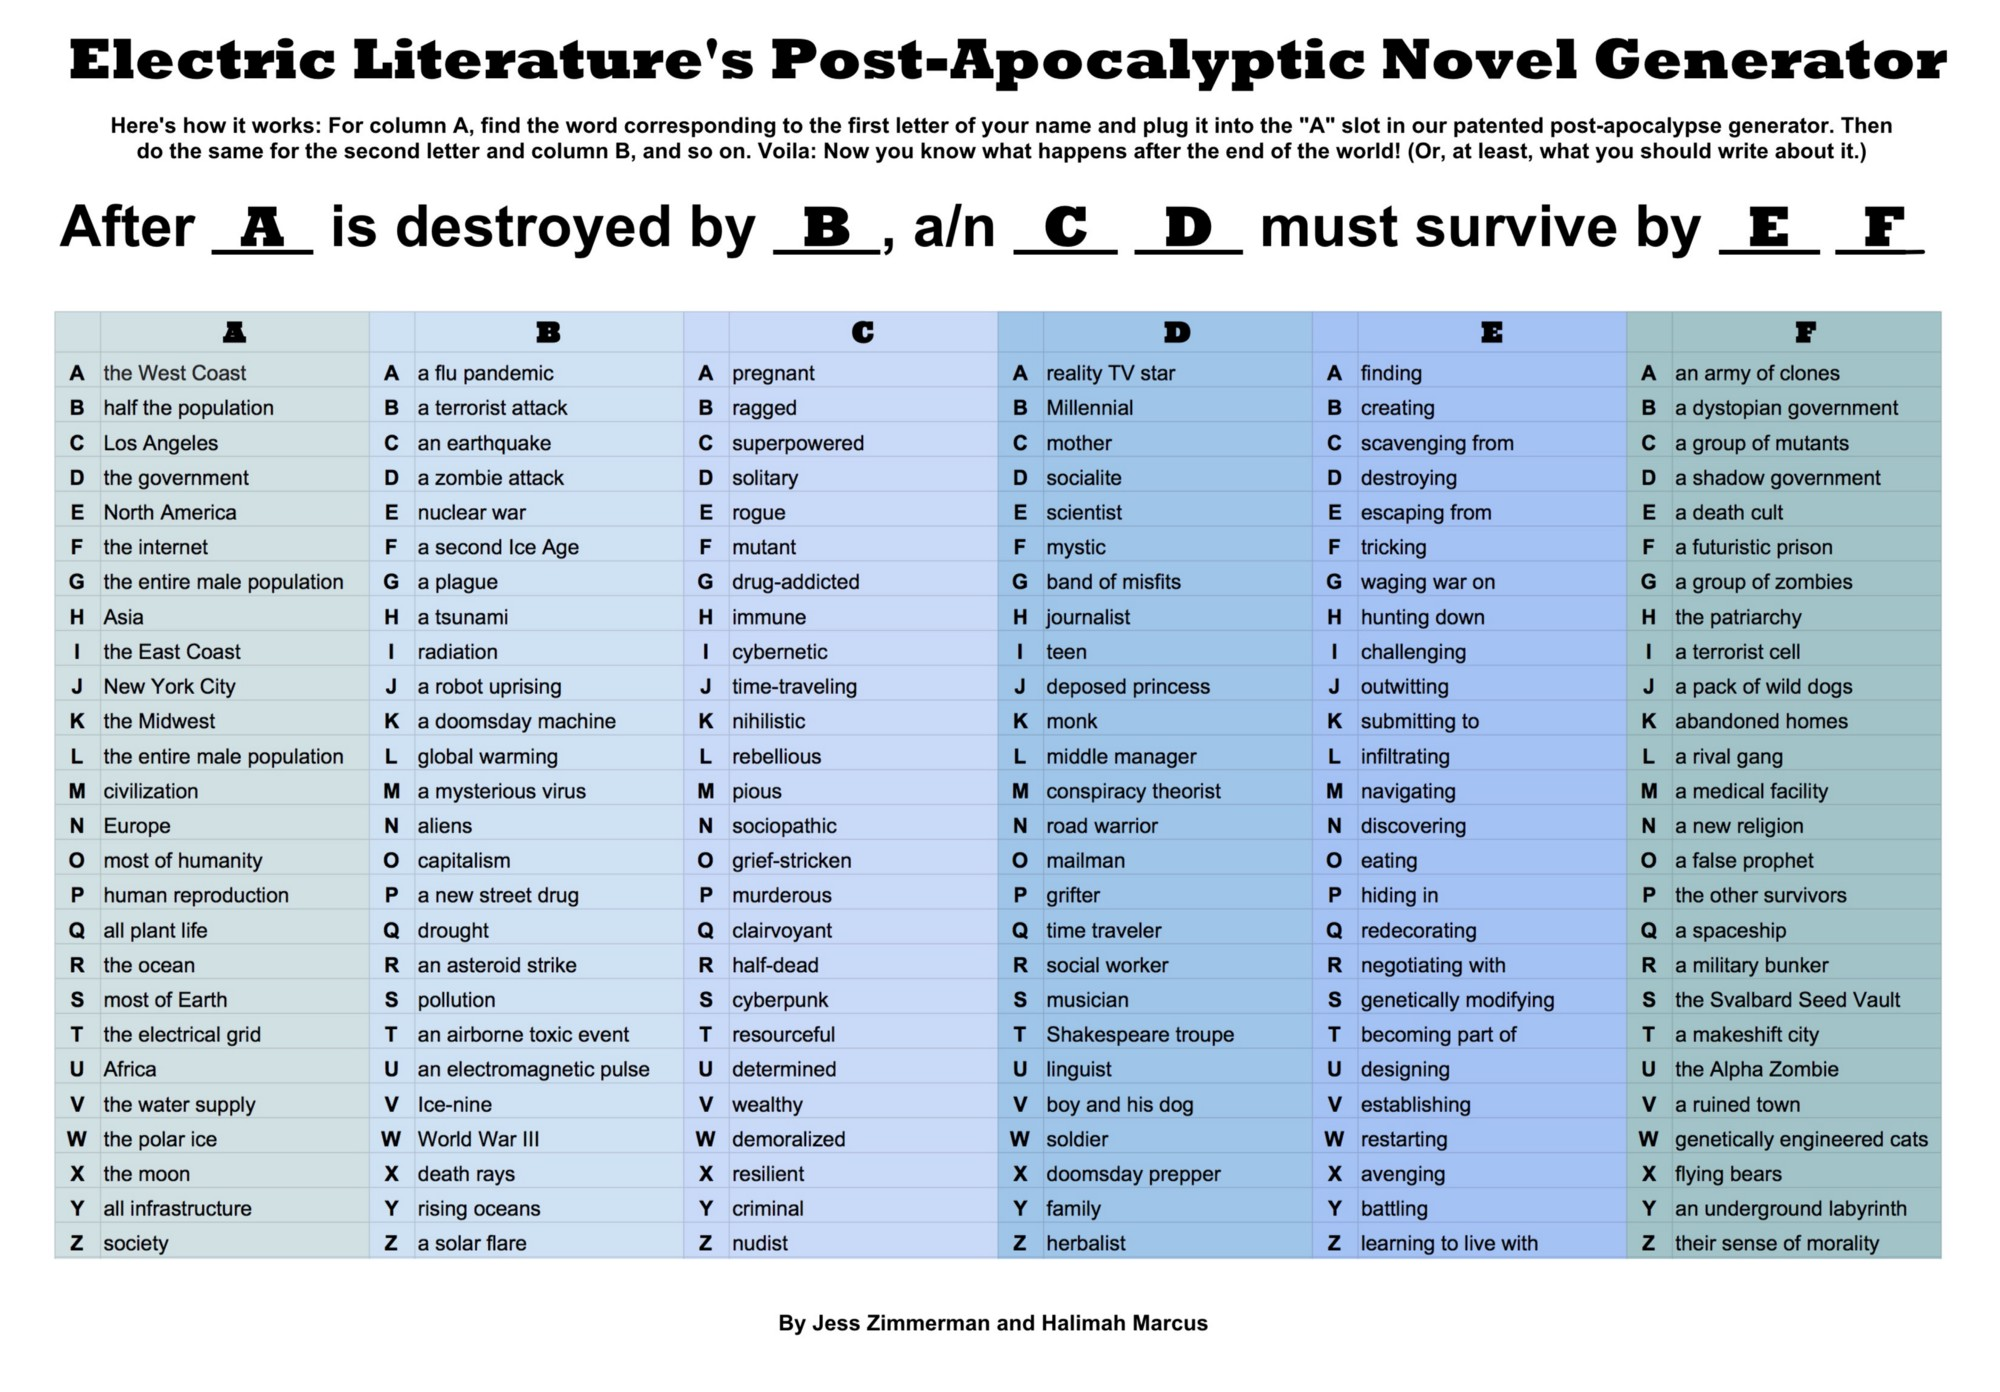 discover the plot of your post-apocalyptic novel with our handy chart